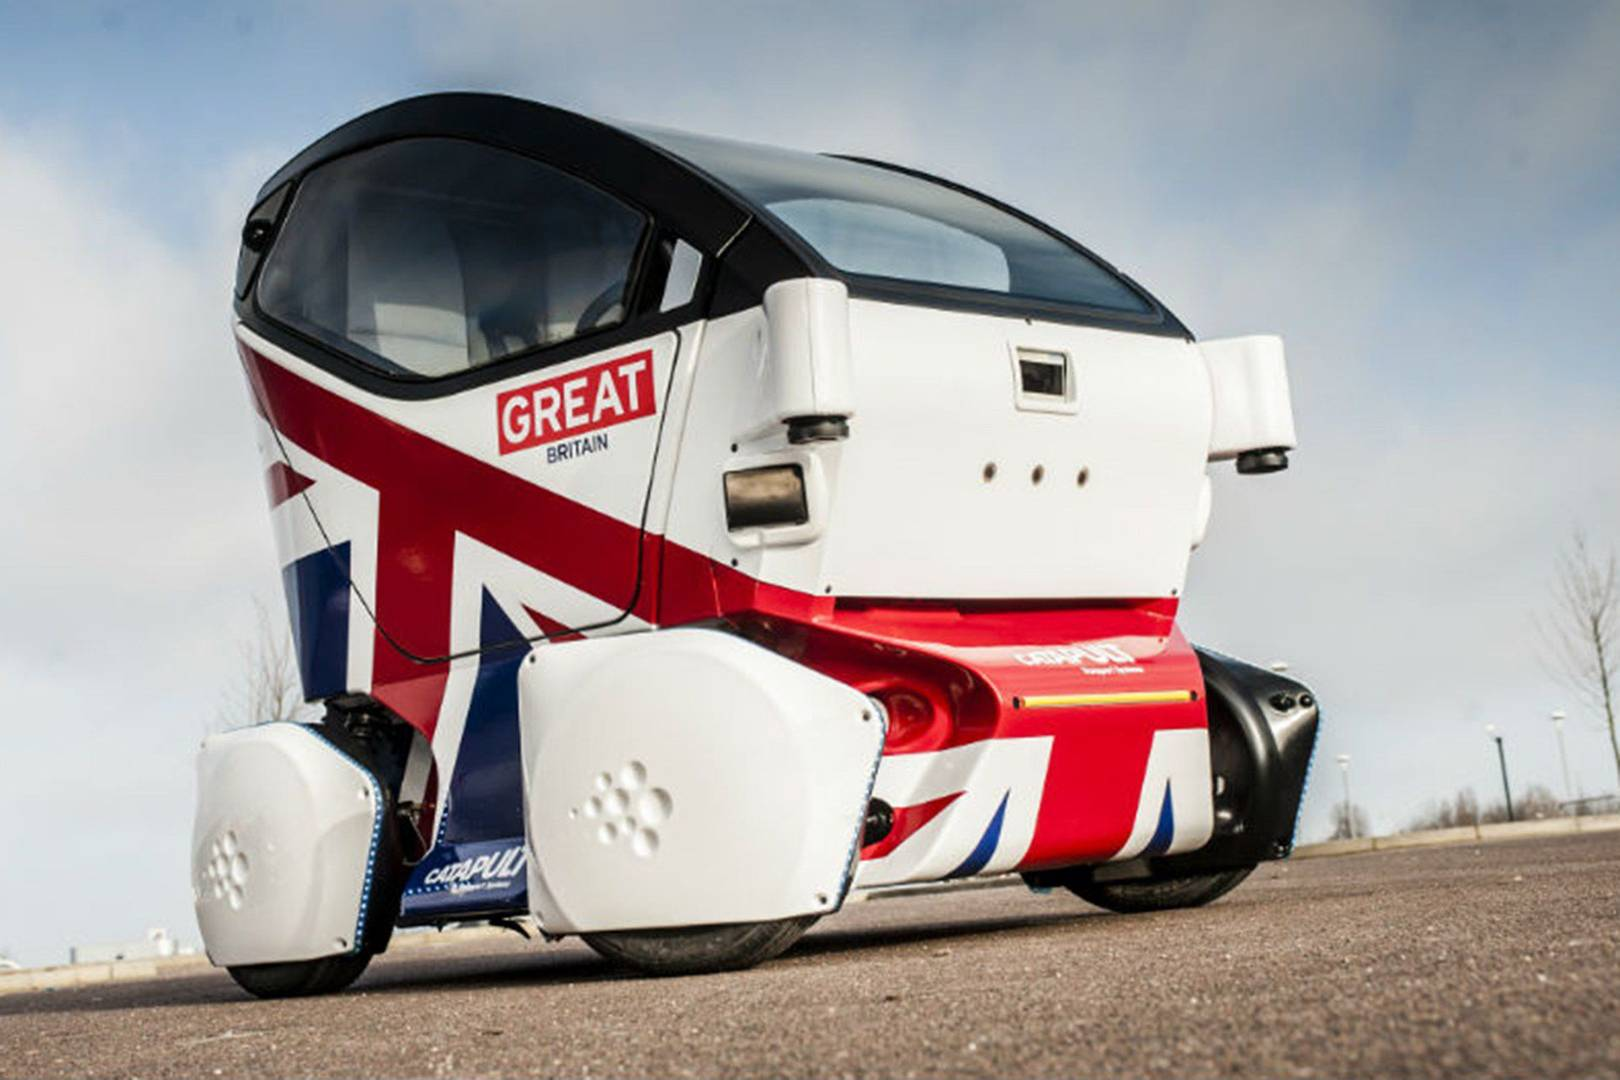 bizarre vehicle designs that could revolutionise your commute